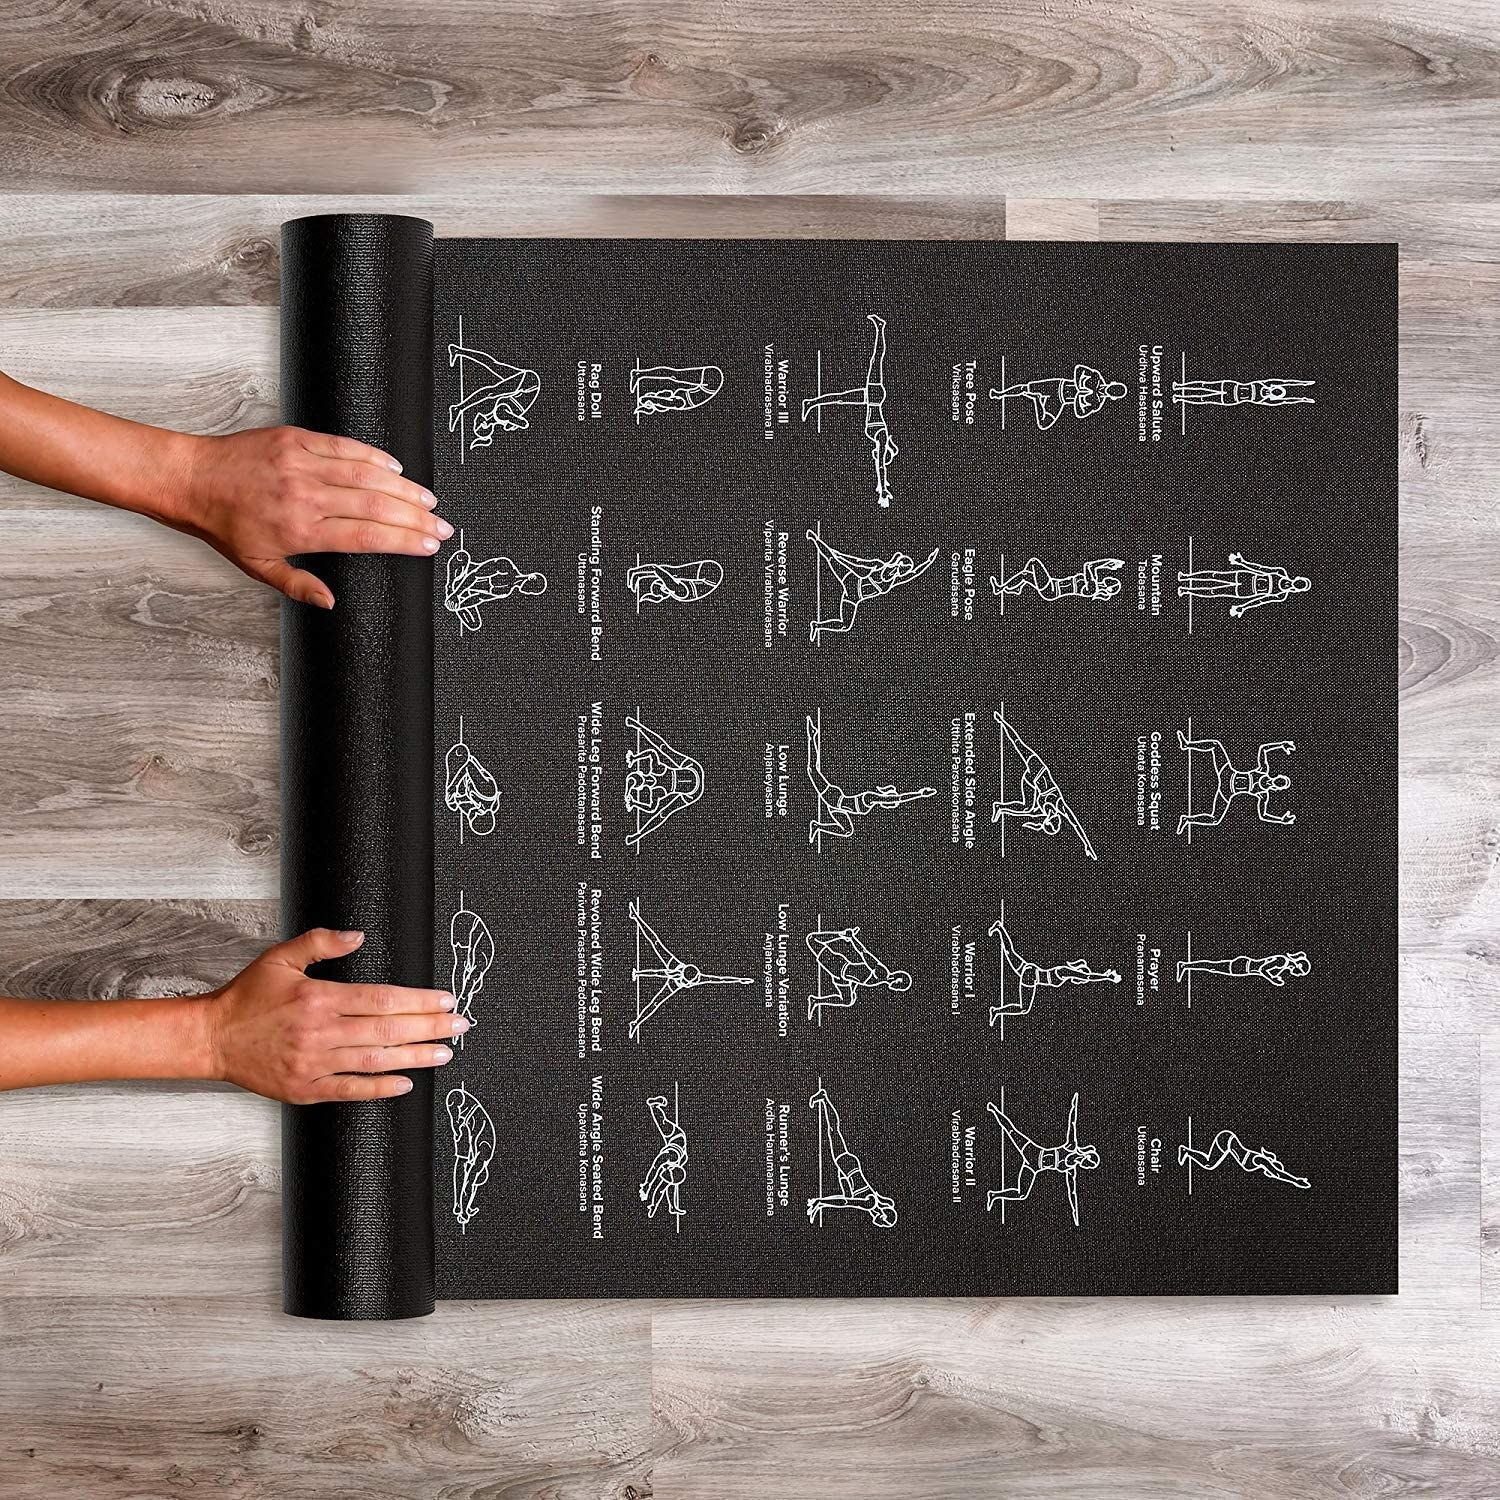 Hands roll out black yoga mat with white illustrated yoga poses